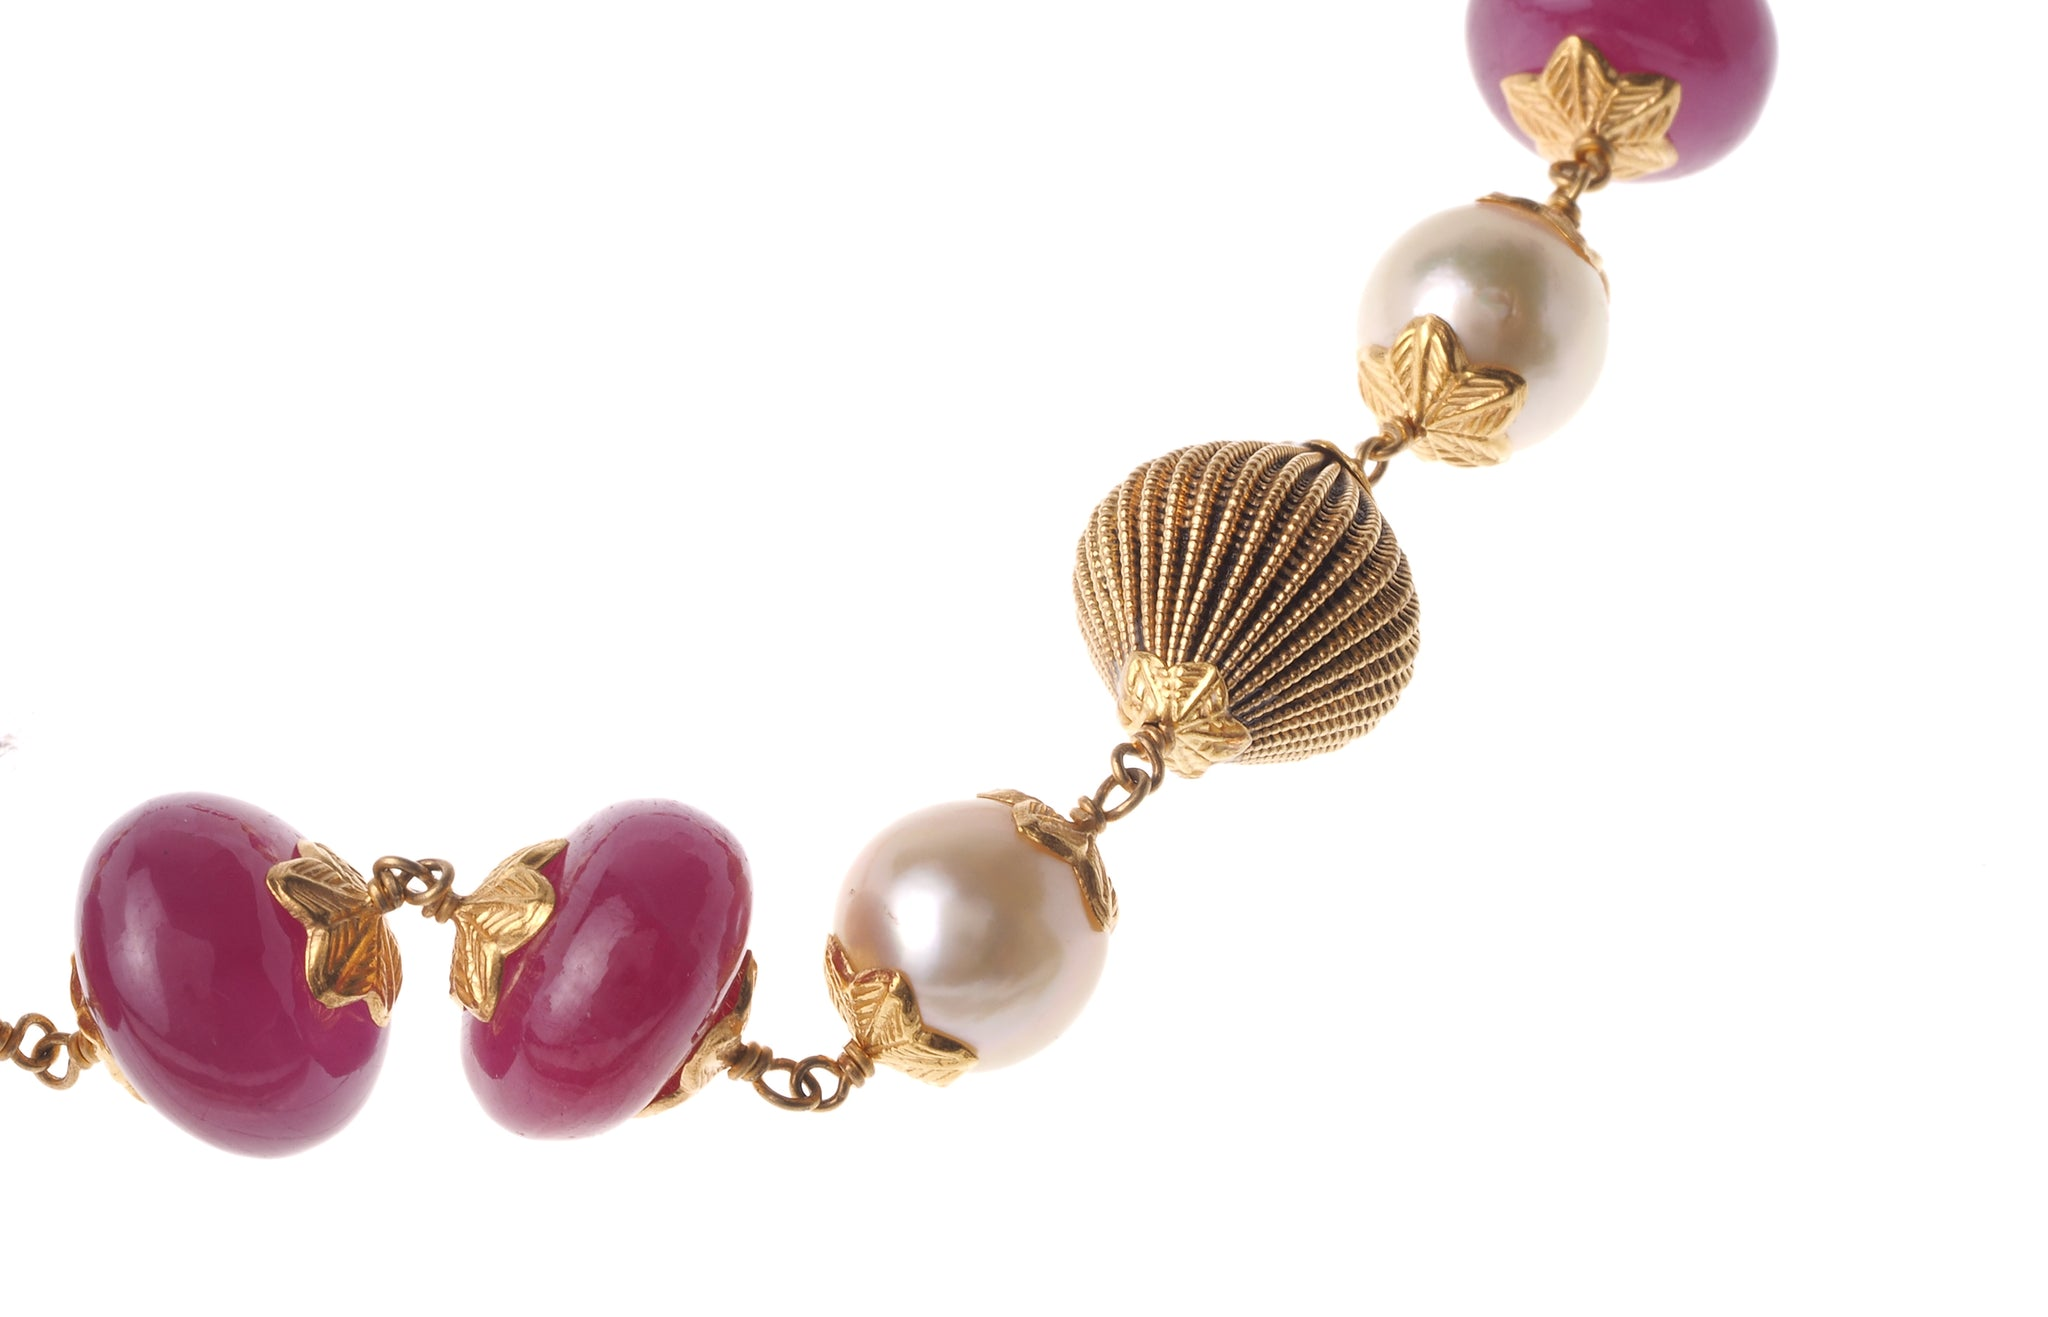 22ct Gold Antiquated Look Necklace and Earring Set with Cultured Pearls, treated Rubies and diamond cut design (GMS-V367)